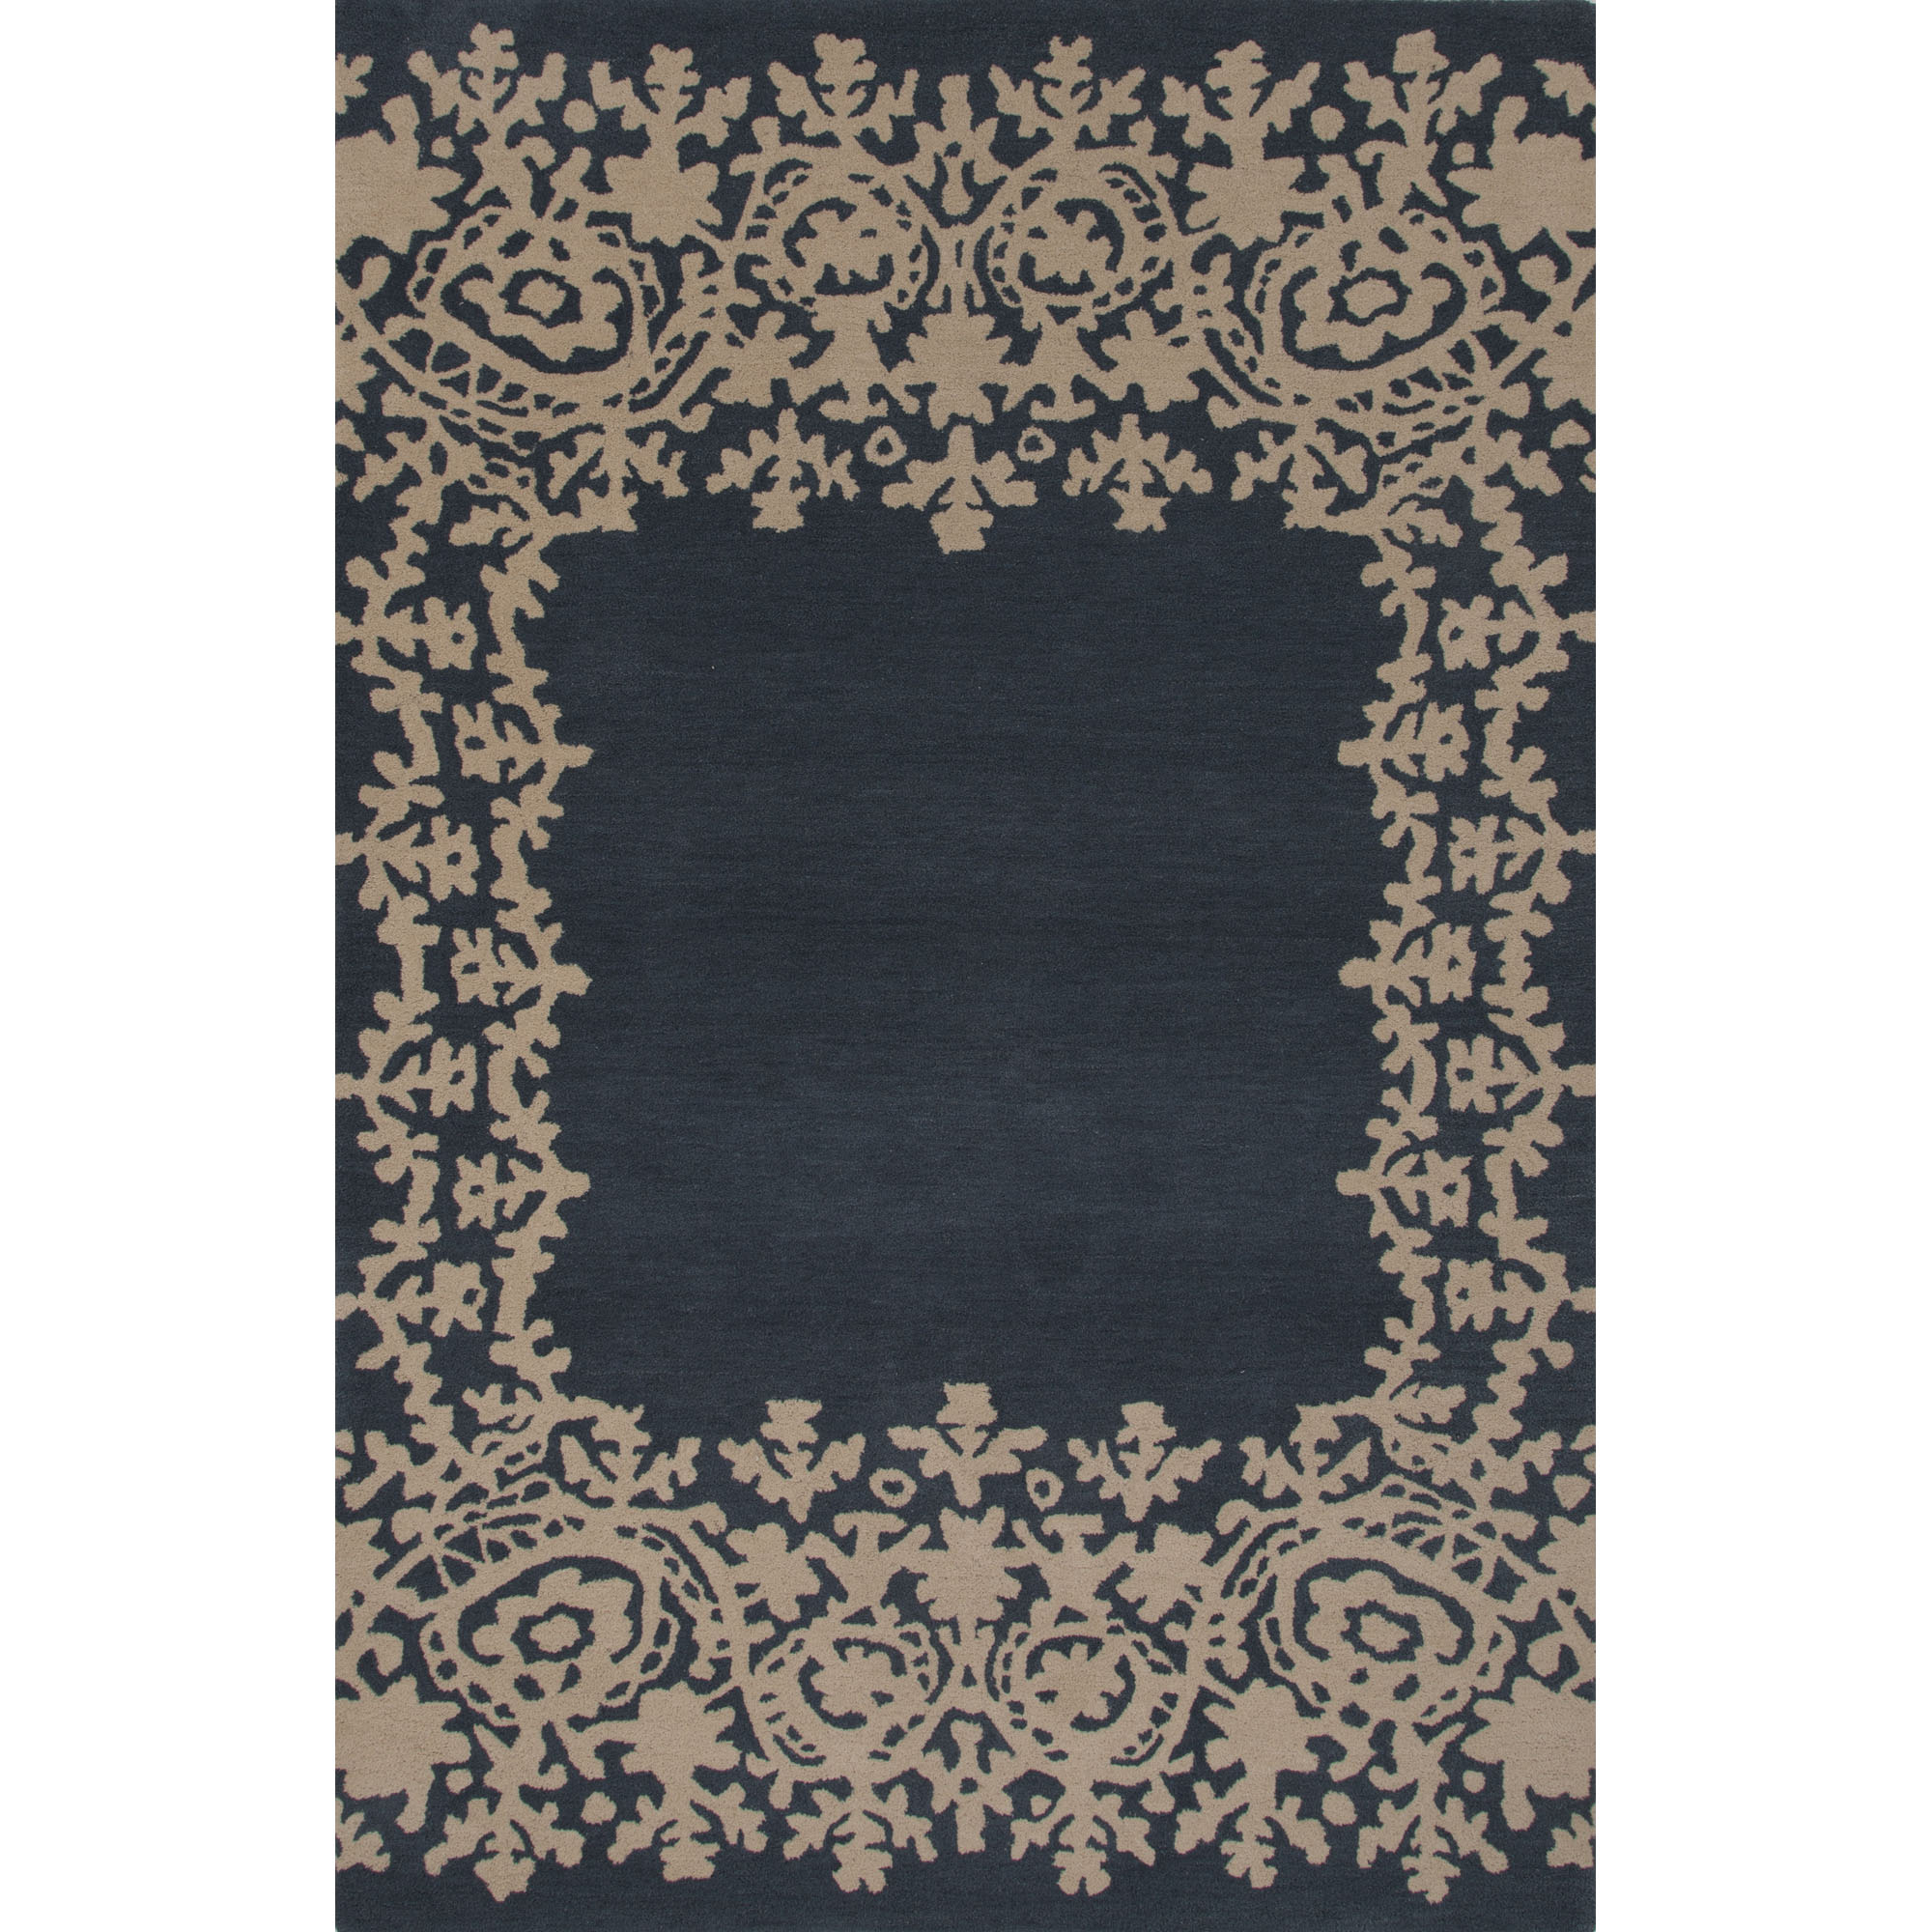 JAIPUR Rugs Traditions Made Modern Tufted 2 x 3 Rug - Item Number: RUG122184